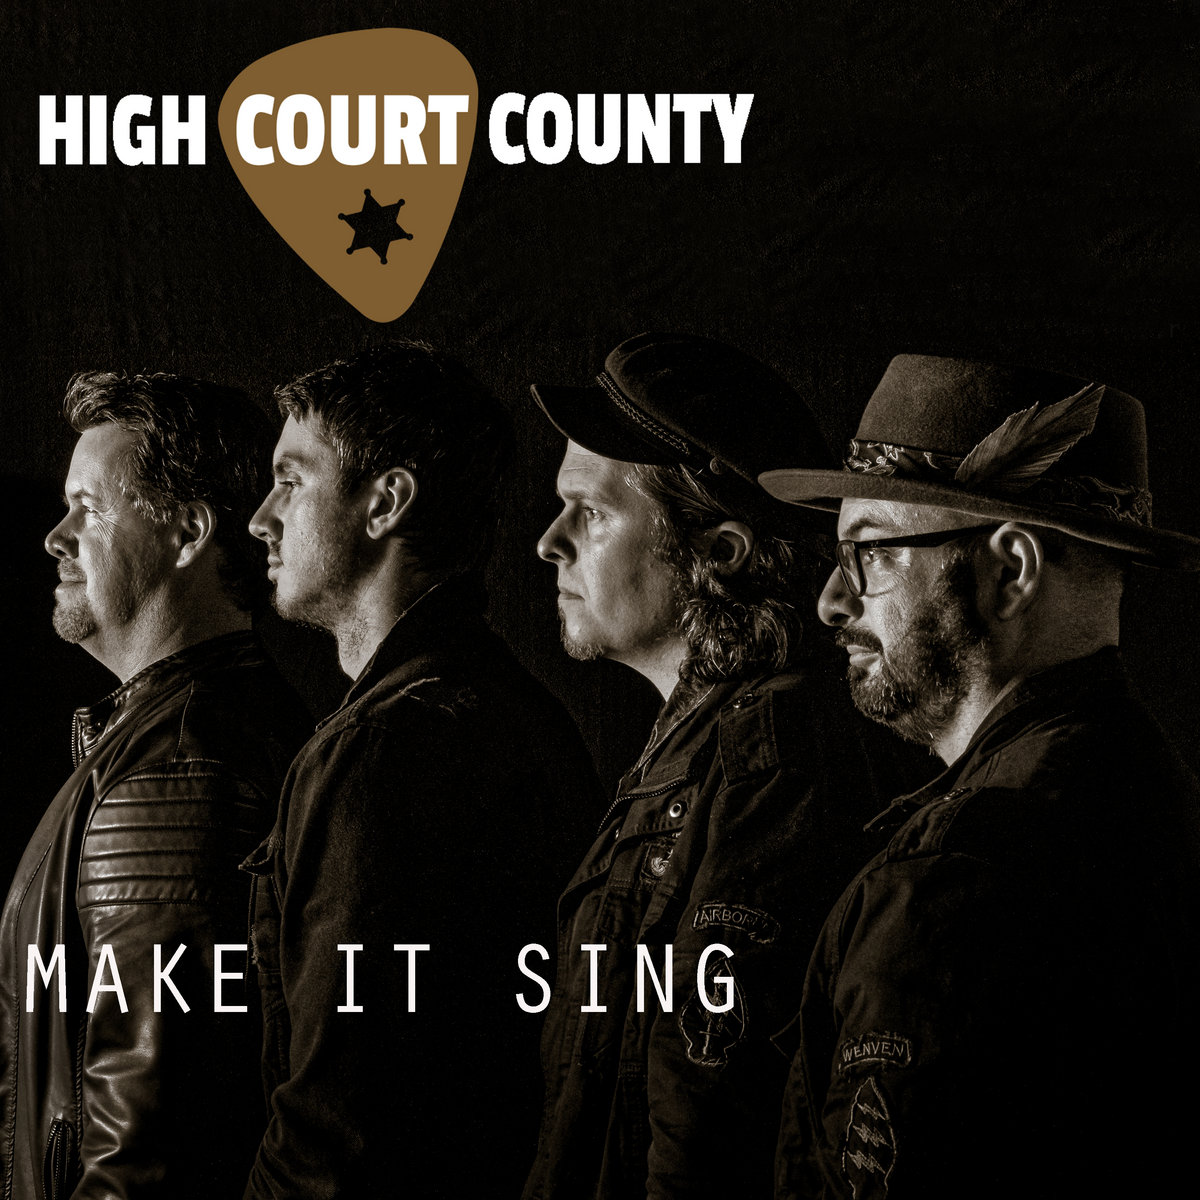 Make It Sing by High Court County